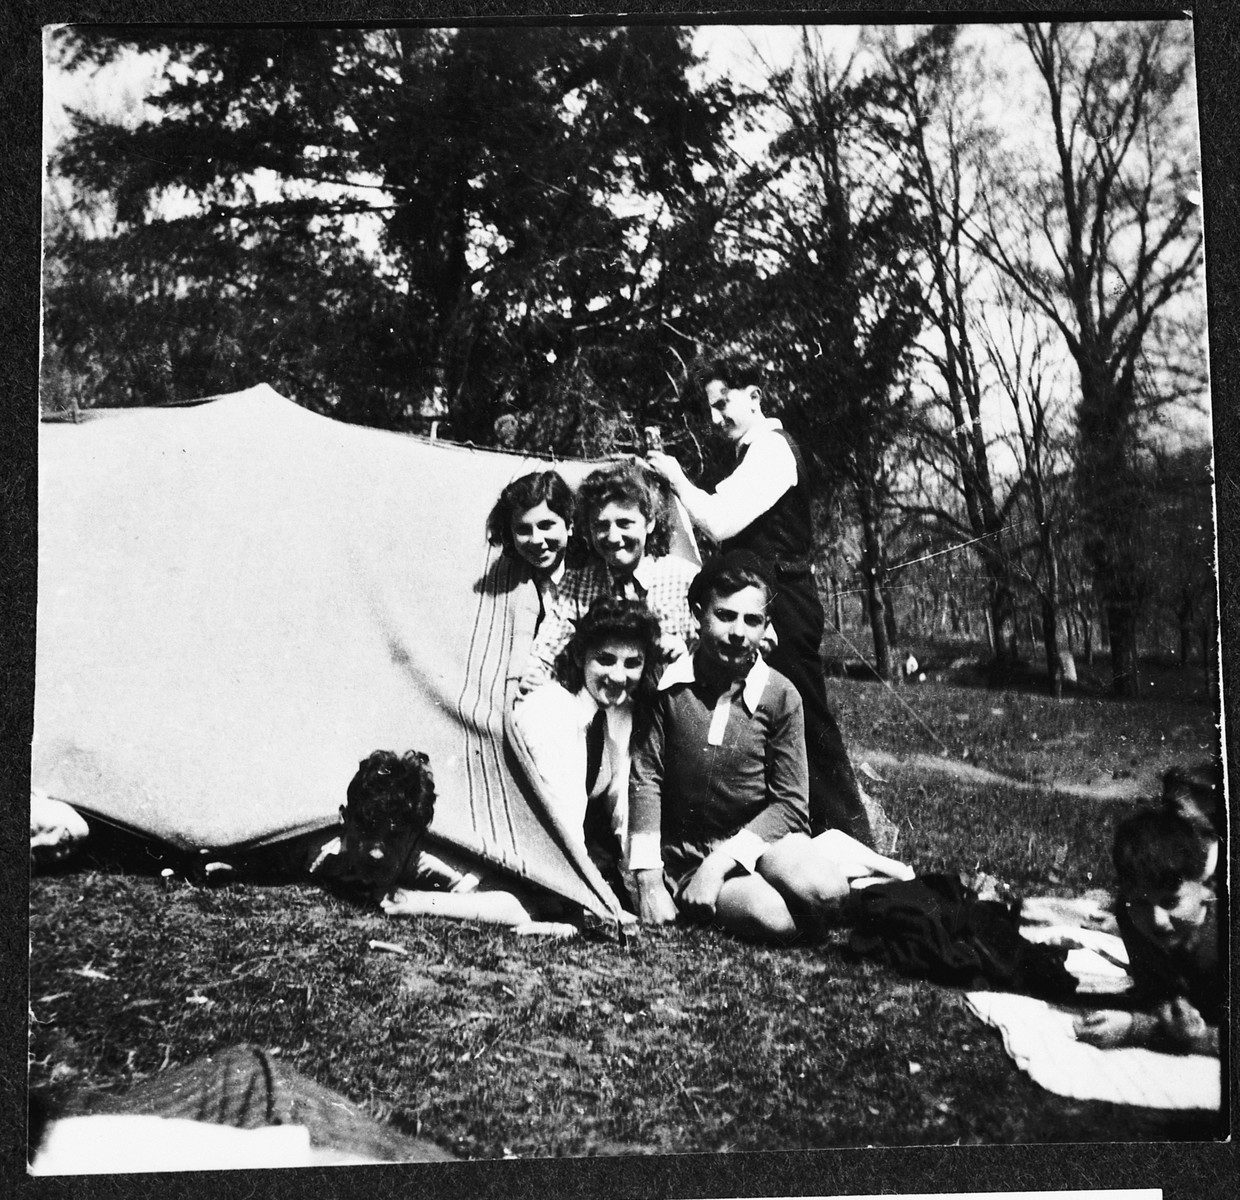 Jewish refugee children from the Chabannes OSE [Oeuvre de Secours aux Enfants] children's home pose at the entrance to a blanket tent while on a camping trip.